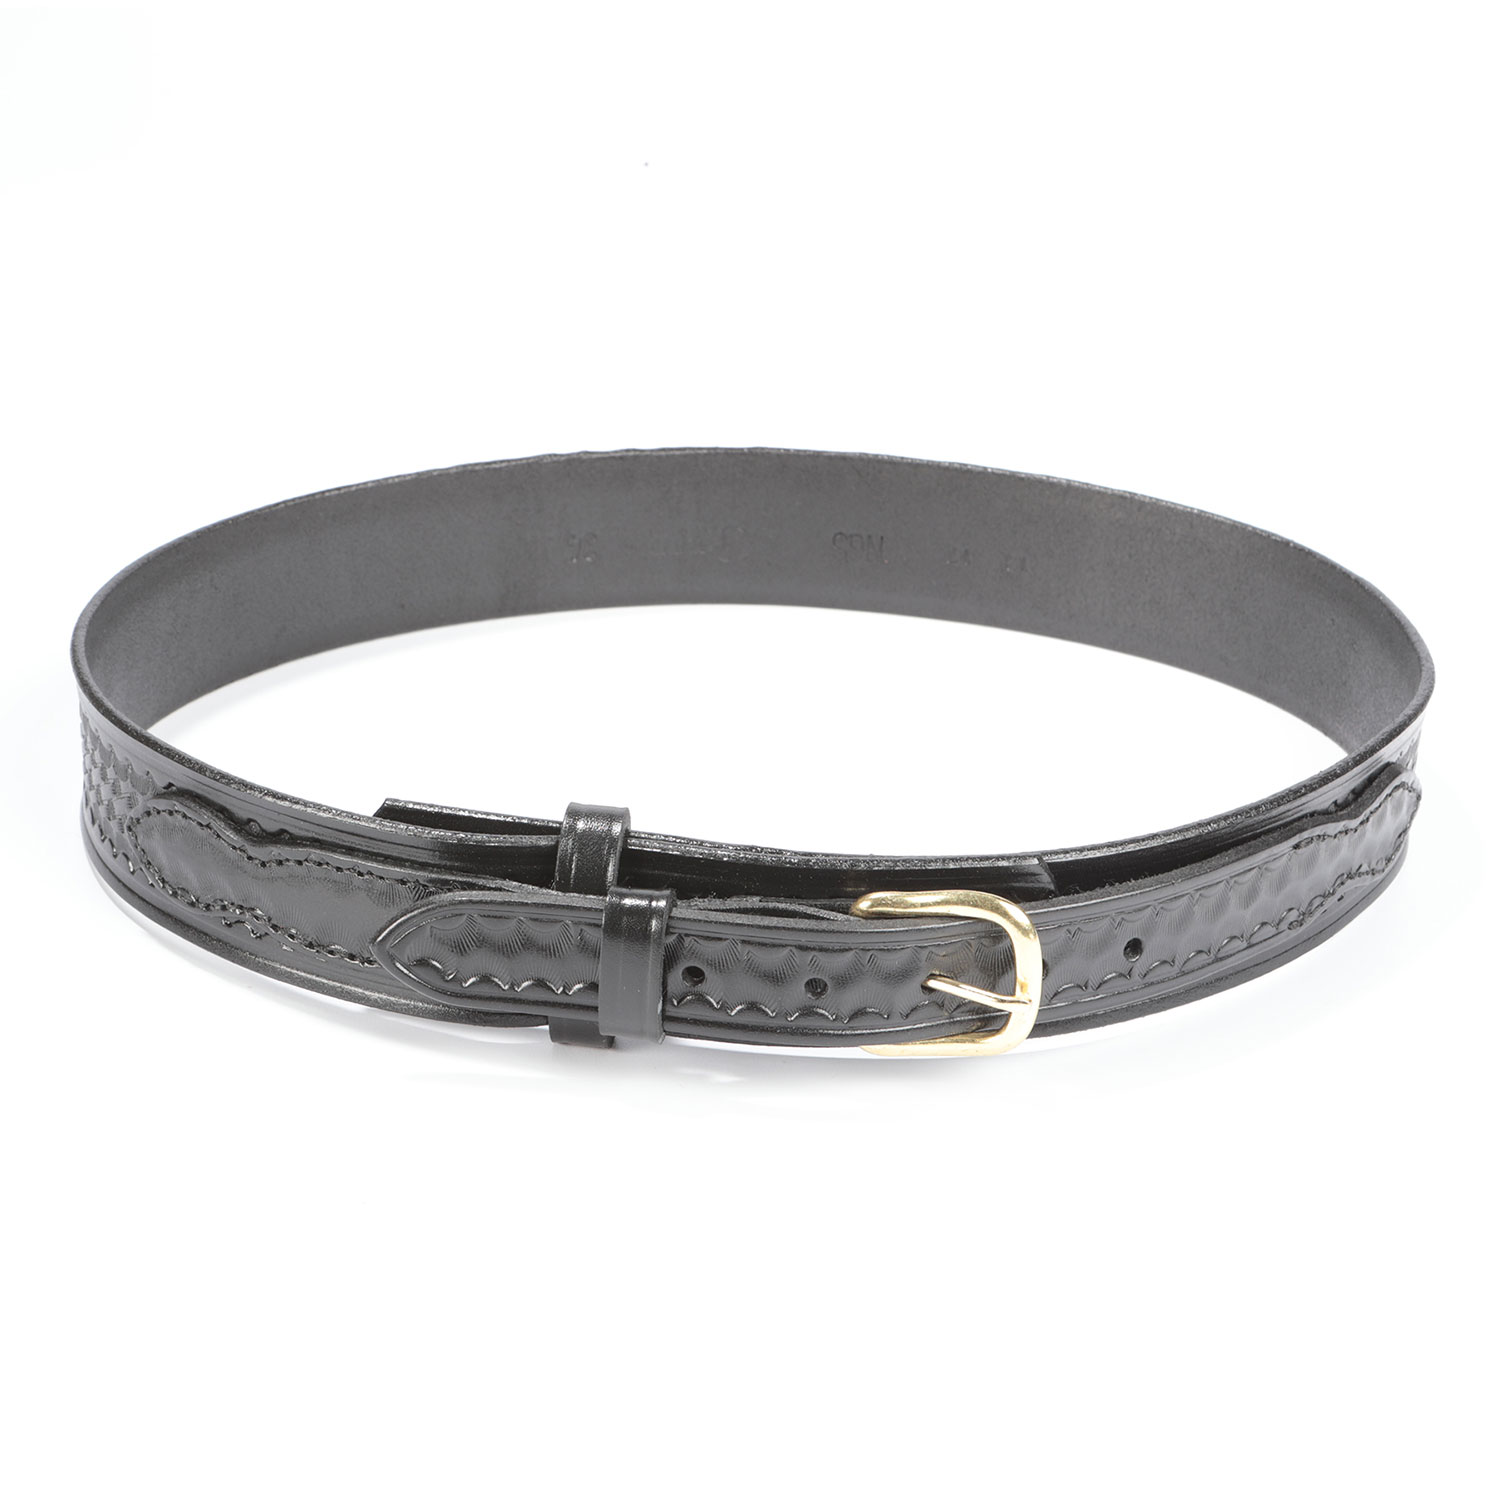 Gould and Goodrich Ranger Duty Belt